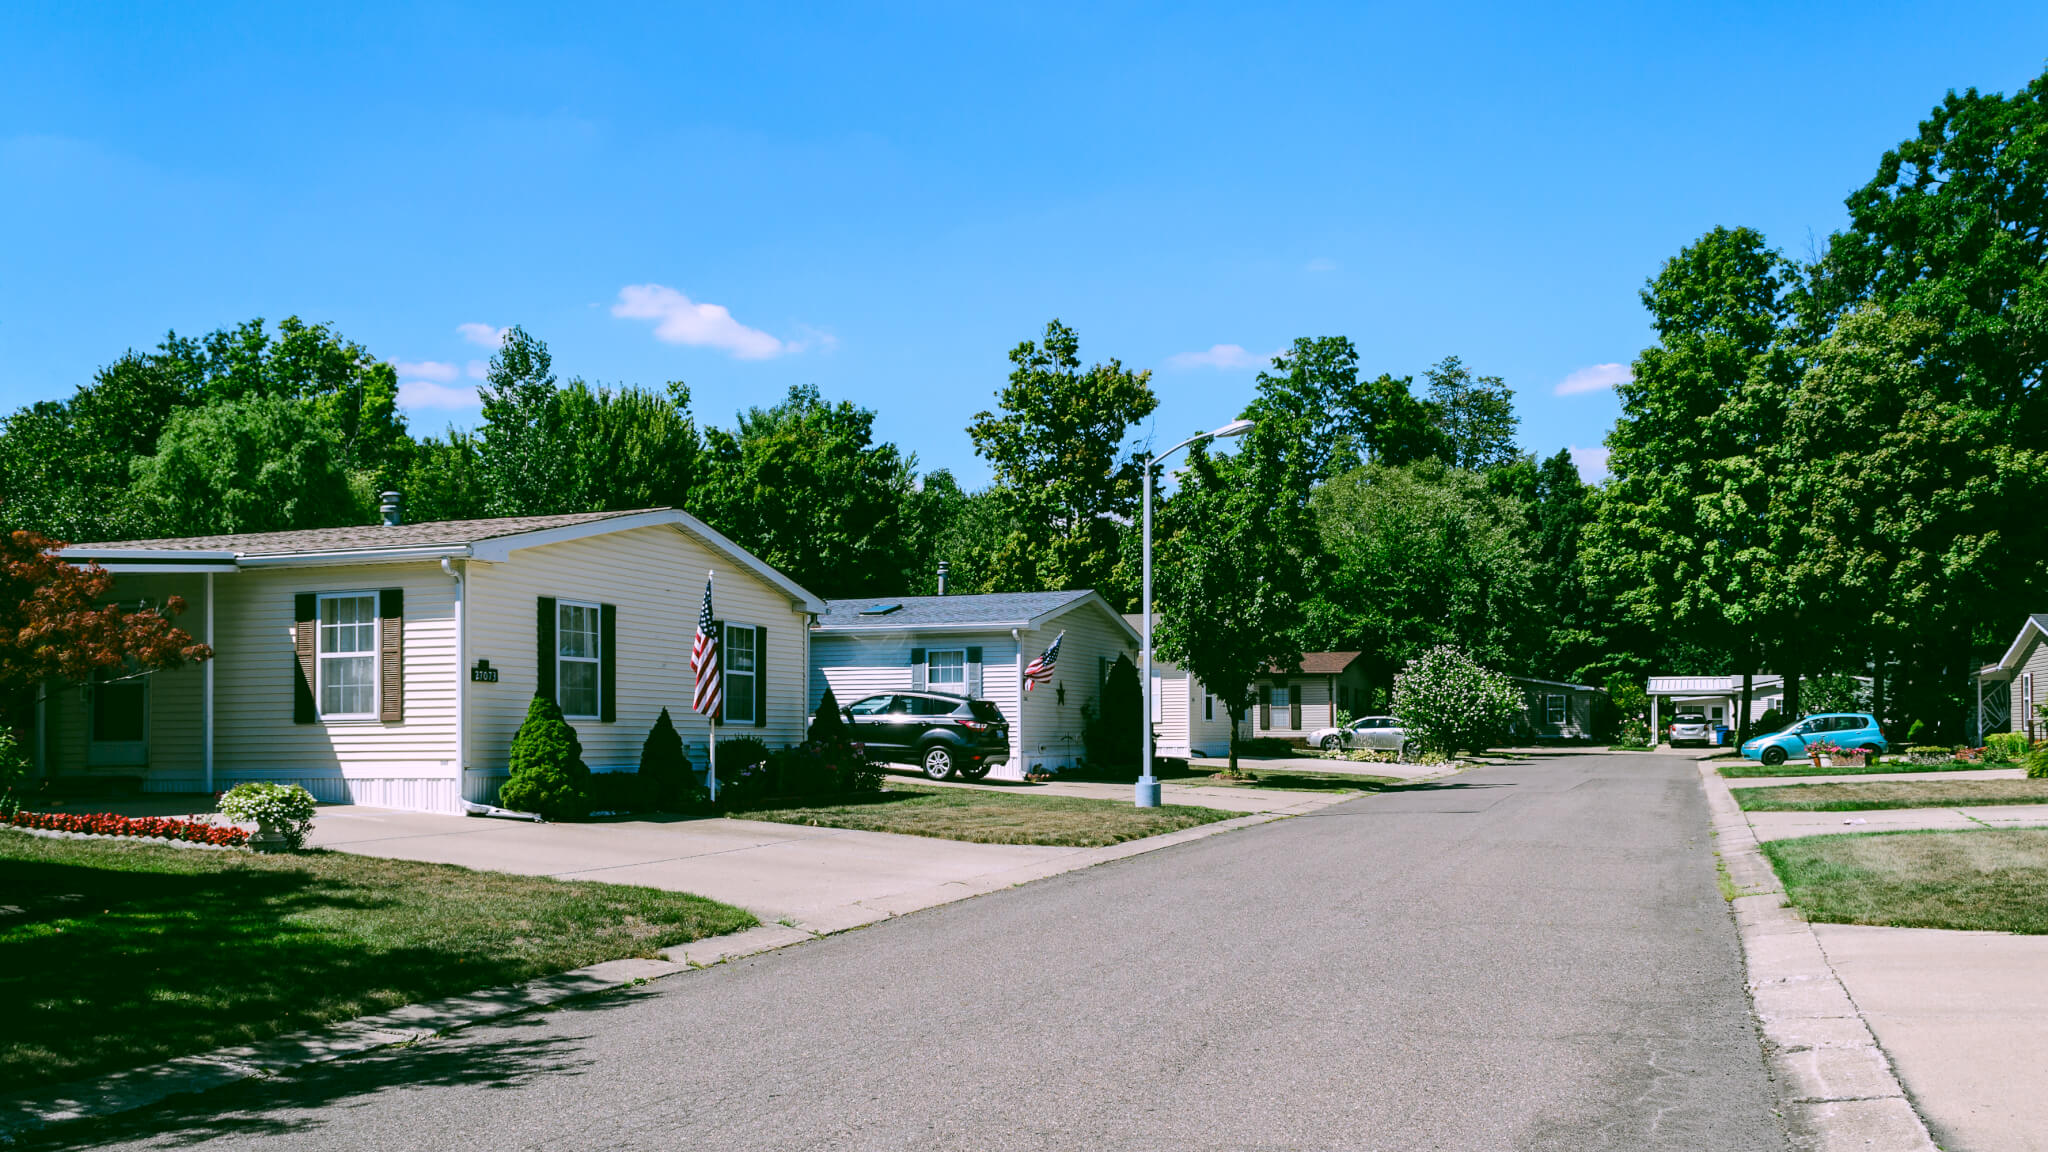 sell my mobile home fast in winston salem nc